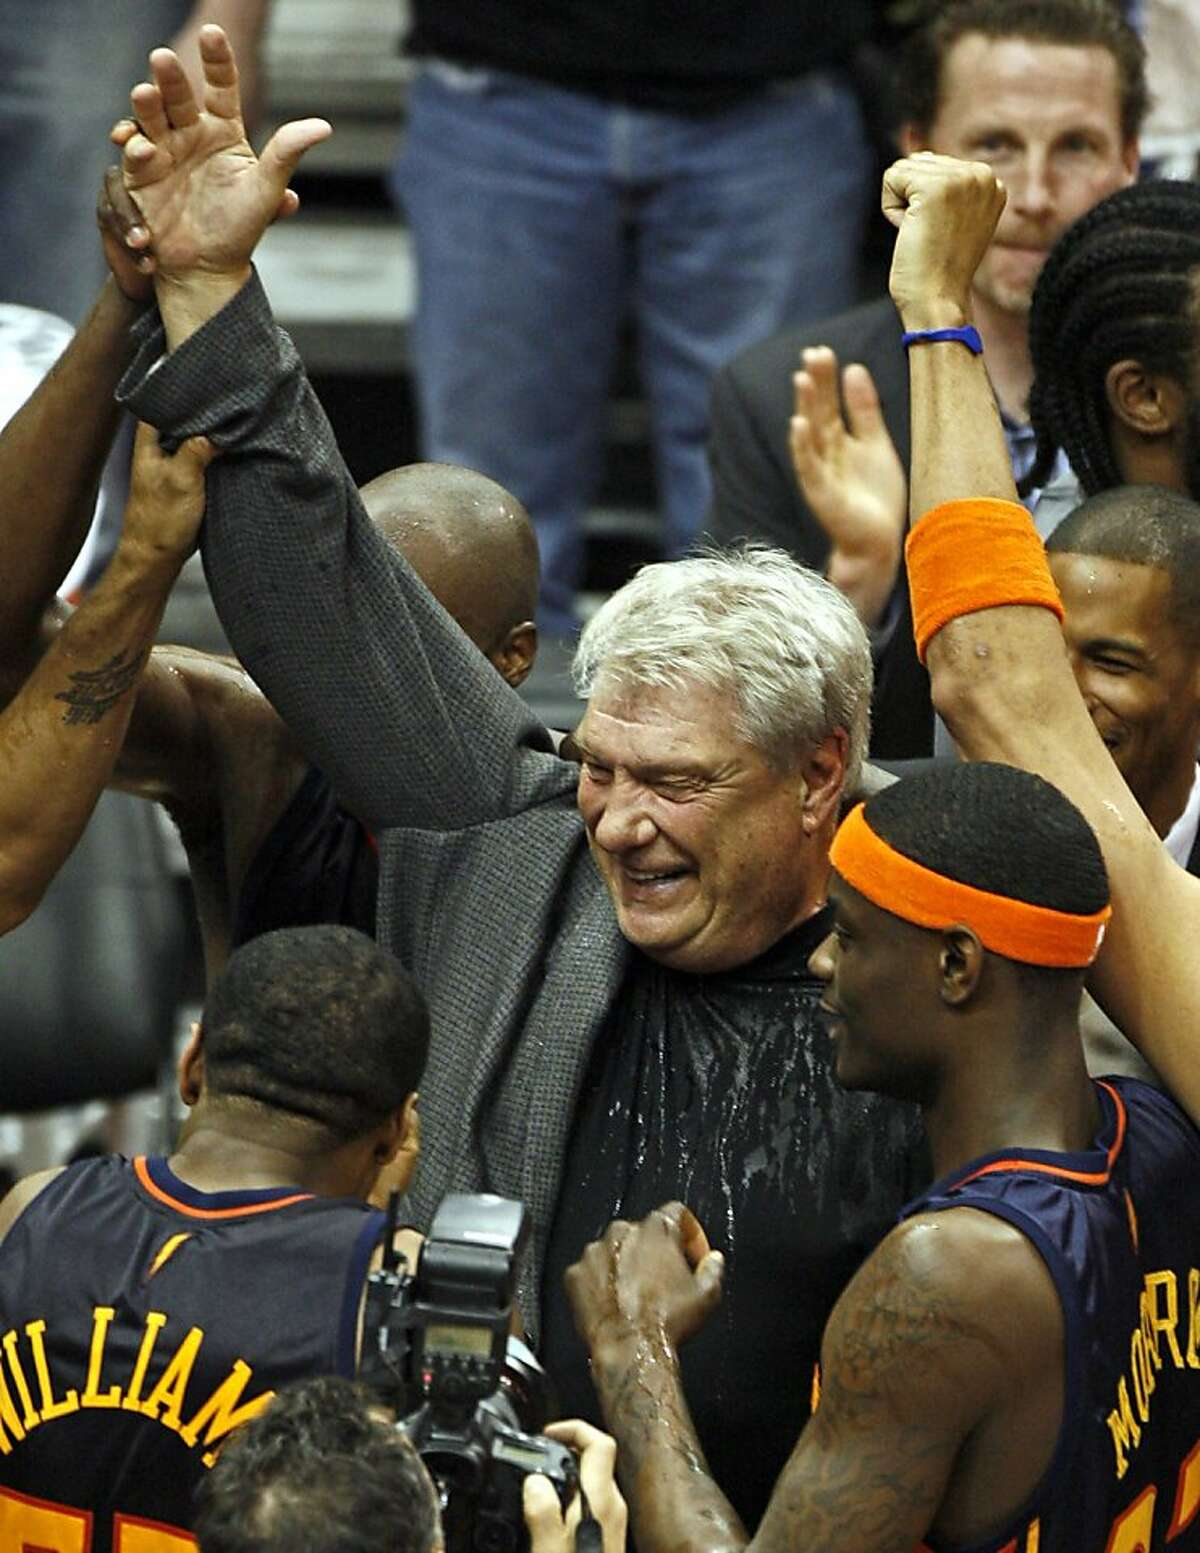 Golden State Warriors coach Don Nelson celebrates with his players following a 116-107 win over the Minnesota Timberwolves at the Target Center in Minneapolis, Minnesota, on Wednesday, April 7, 2010. With the win, Nelson set an NBA record for career victories with 1,333, passing Lenny Wilkens. (Marlin Levison/Minneapolis Star Tribune/MCT)